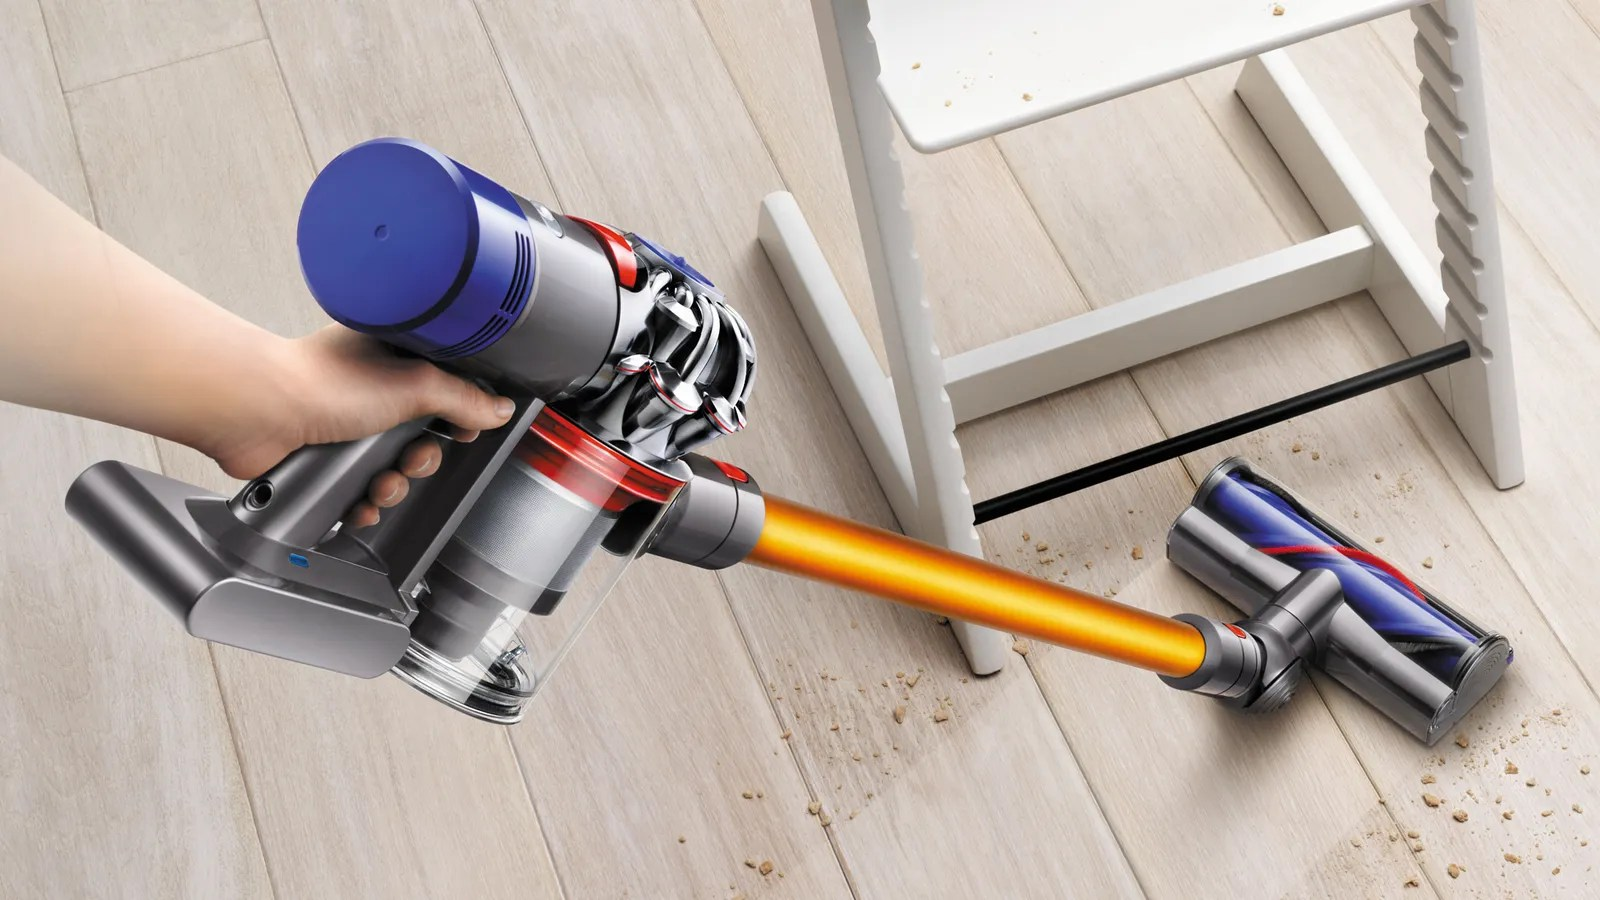 Aspirateur Dyson V8 Absolute Dyson Just Fixed Everything Wrong With Its Cordless Vacuum